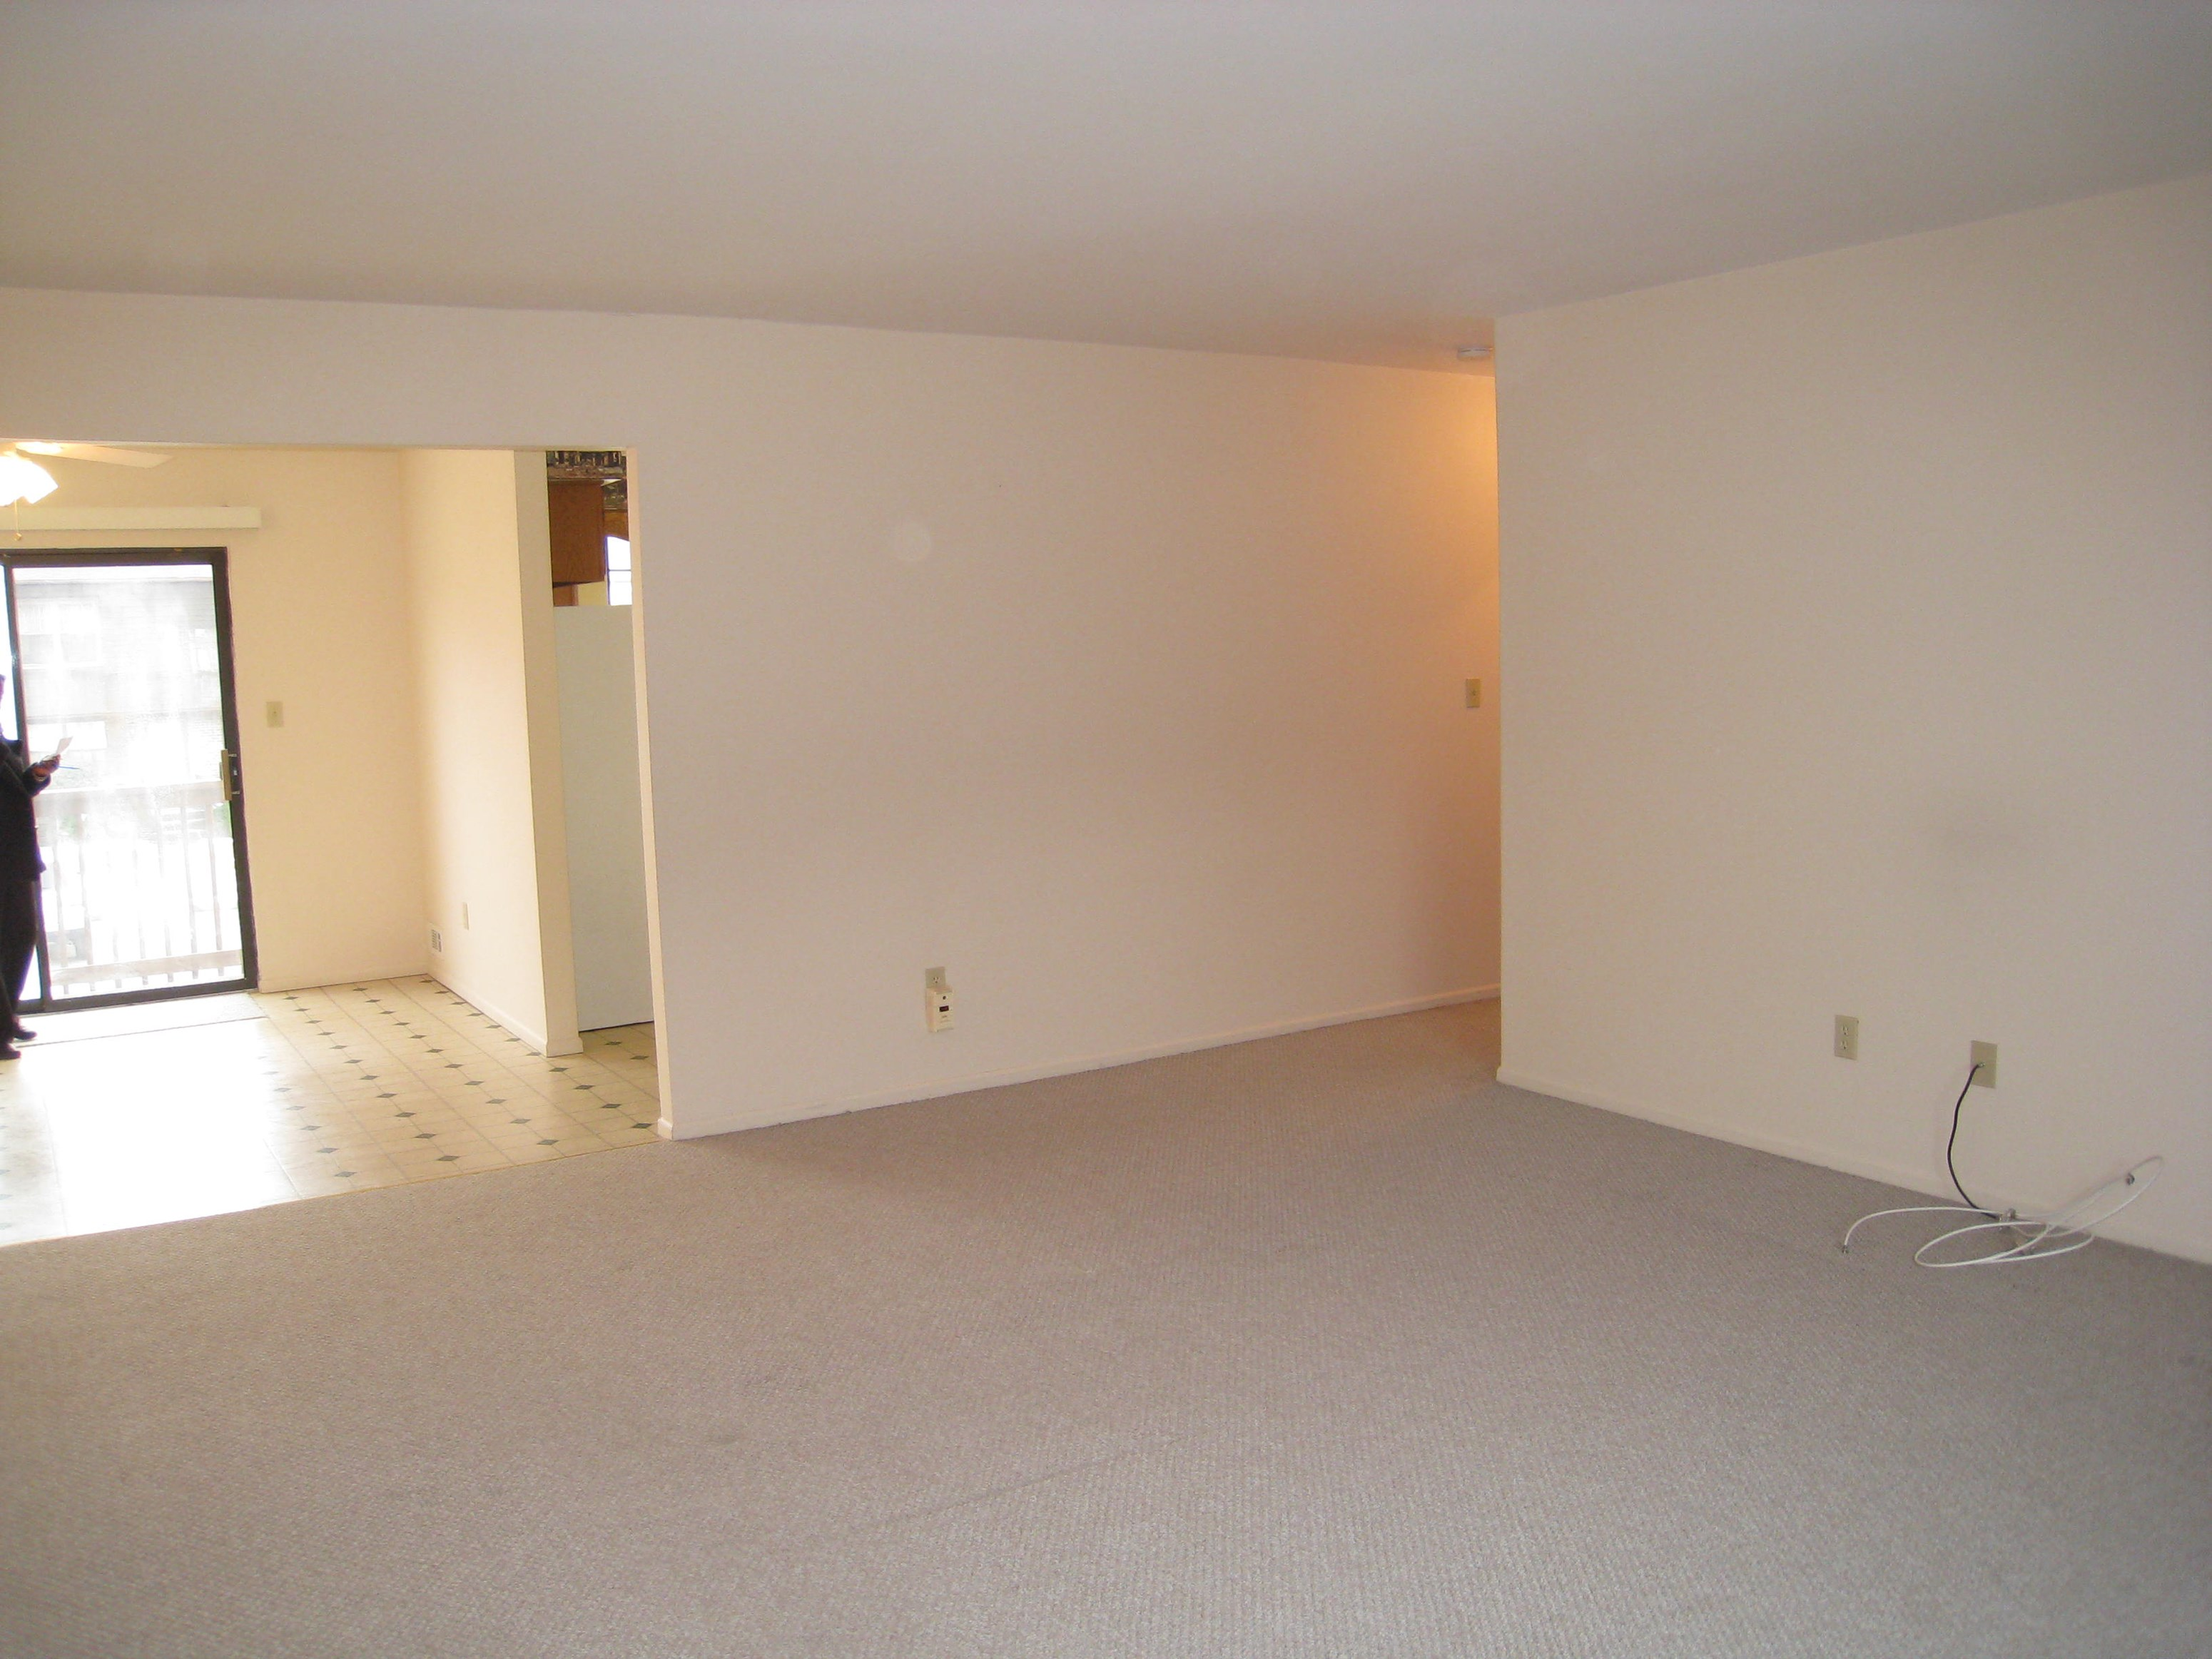 lovely 1 br close to edison train station wd included flexible term